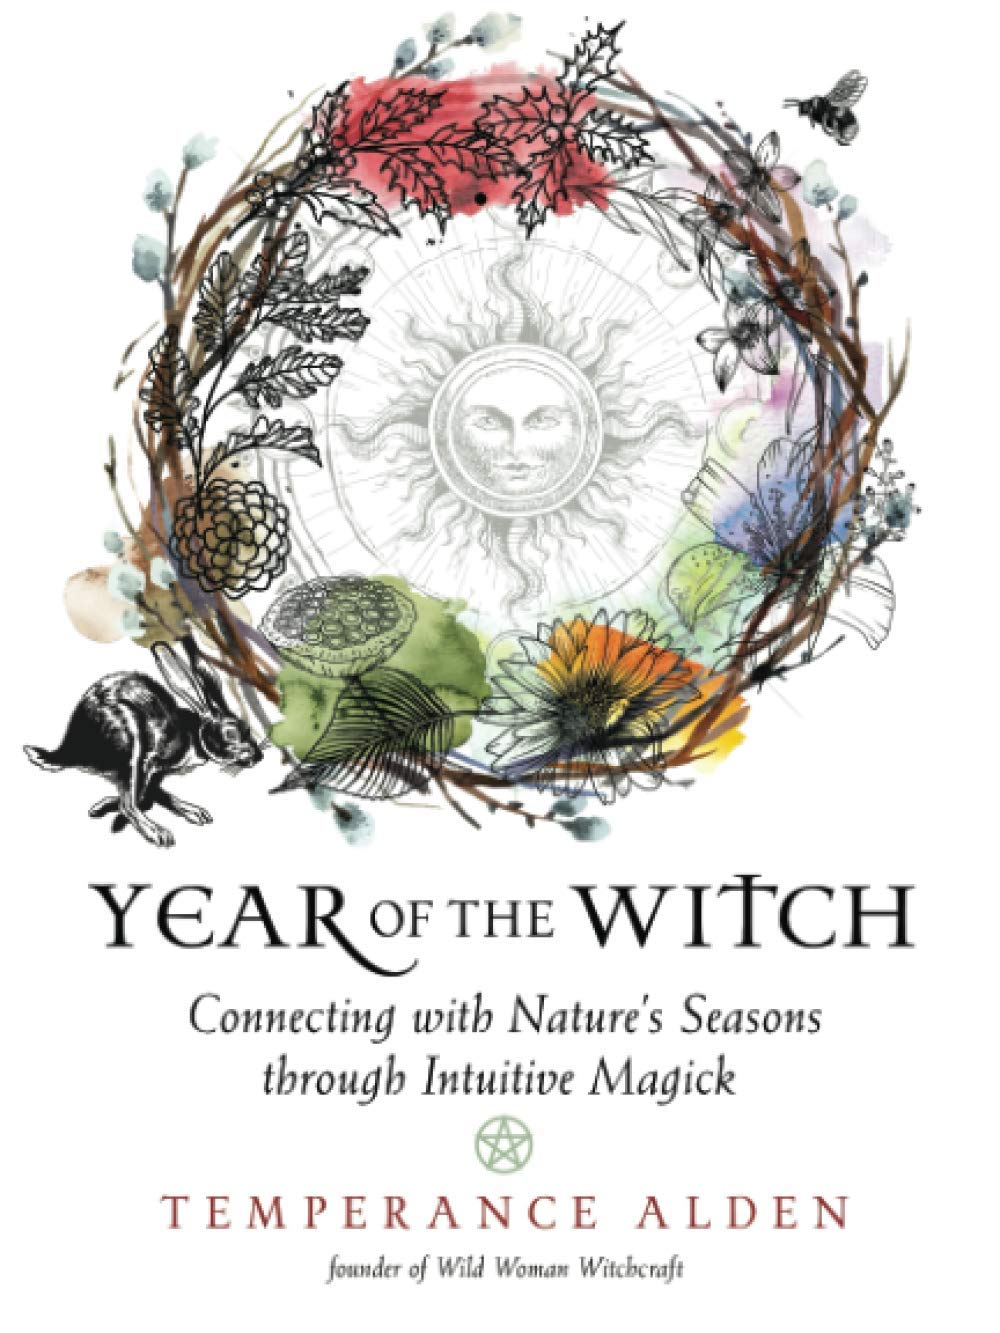 Year of the Witch: Connecting with Nature's Seasons Through Intuitive Magick by Temperance Alden